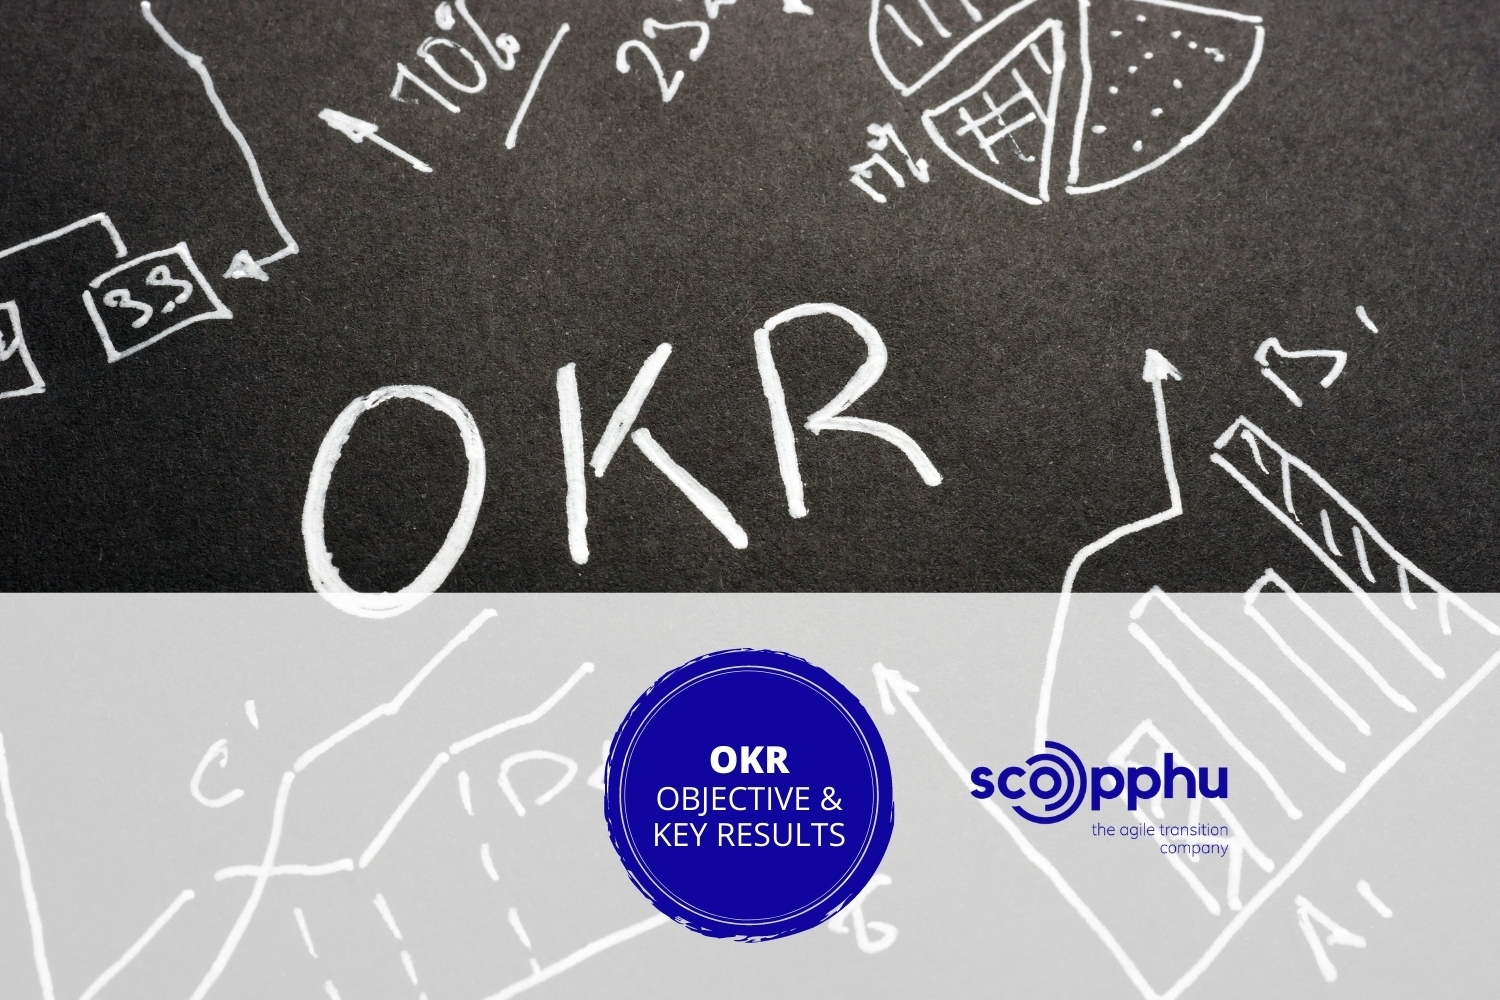 Live Online: (OKR's) OBJECTIVES & KEY RESULTS